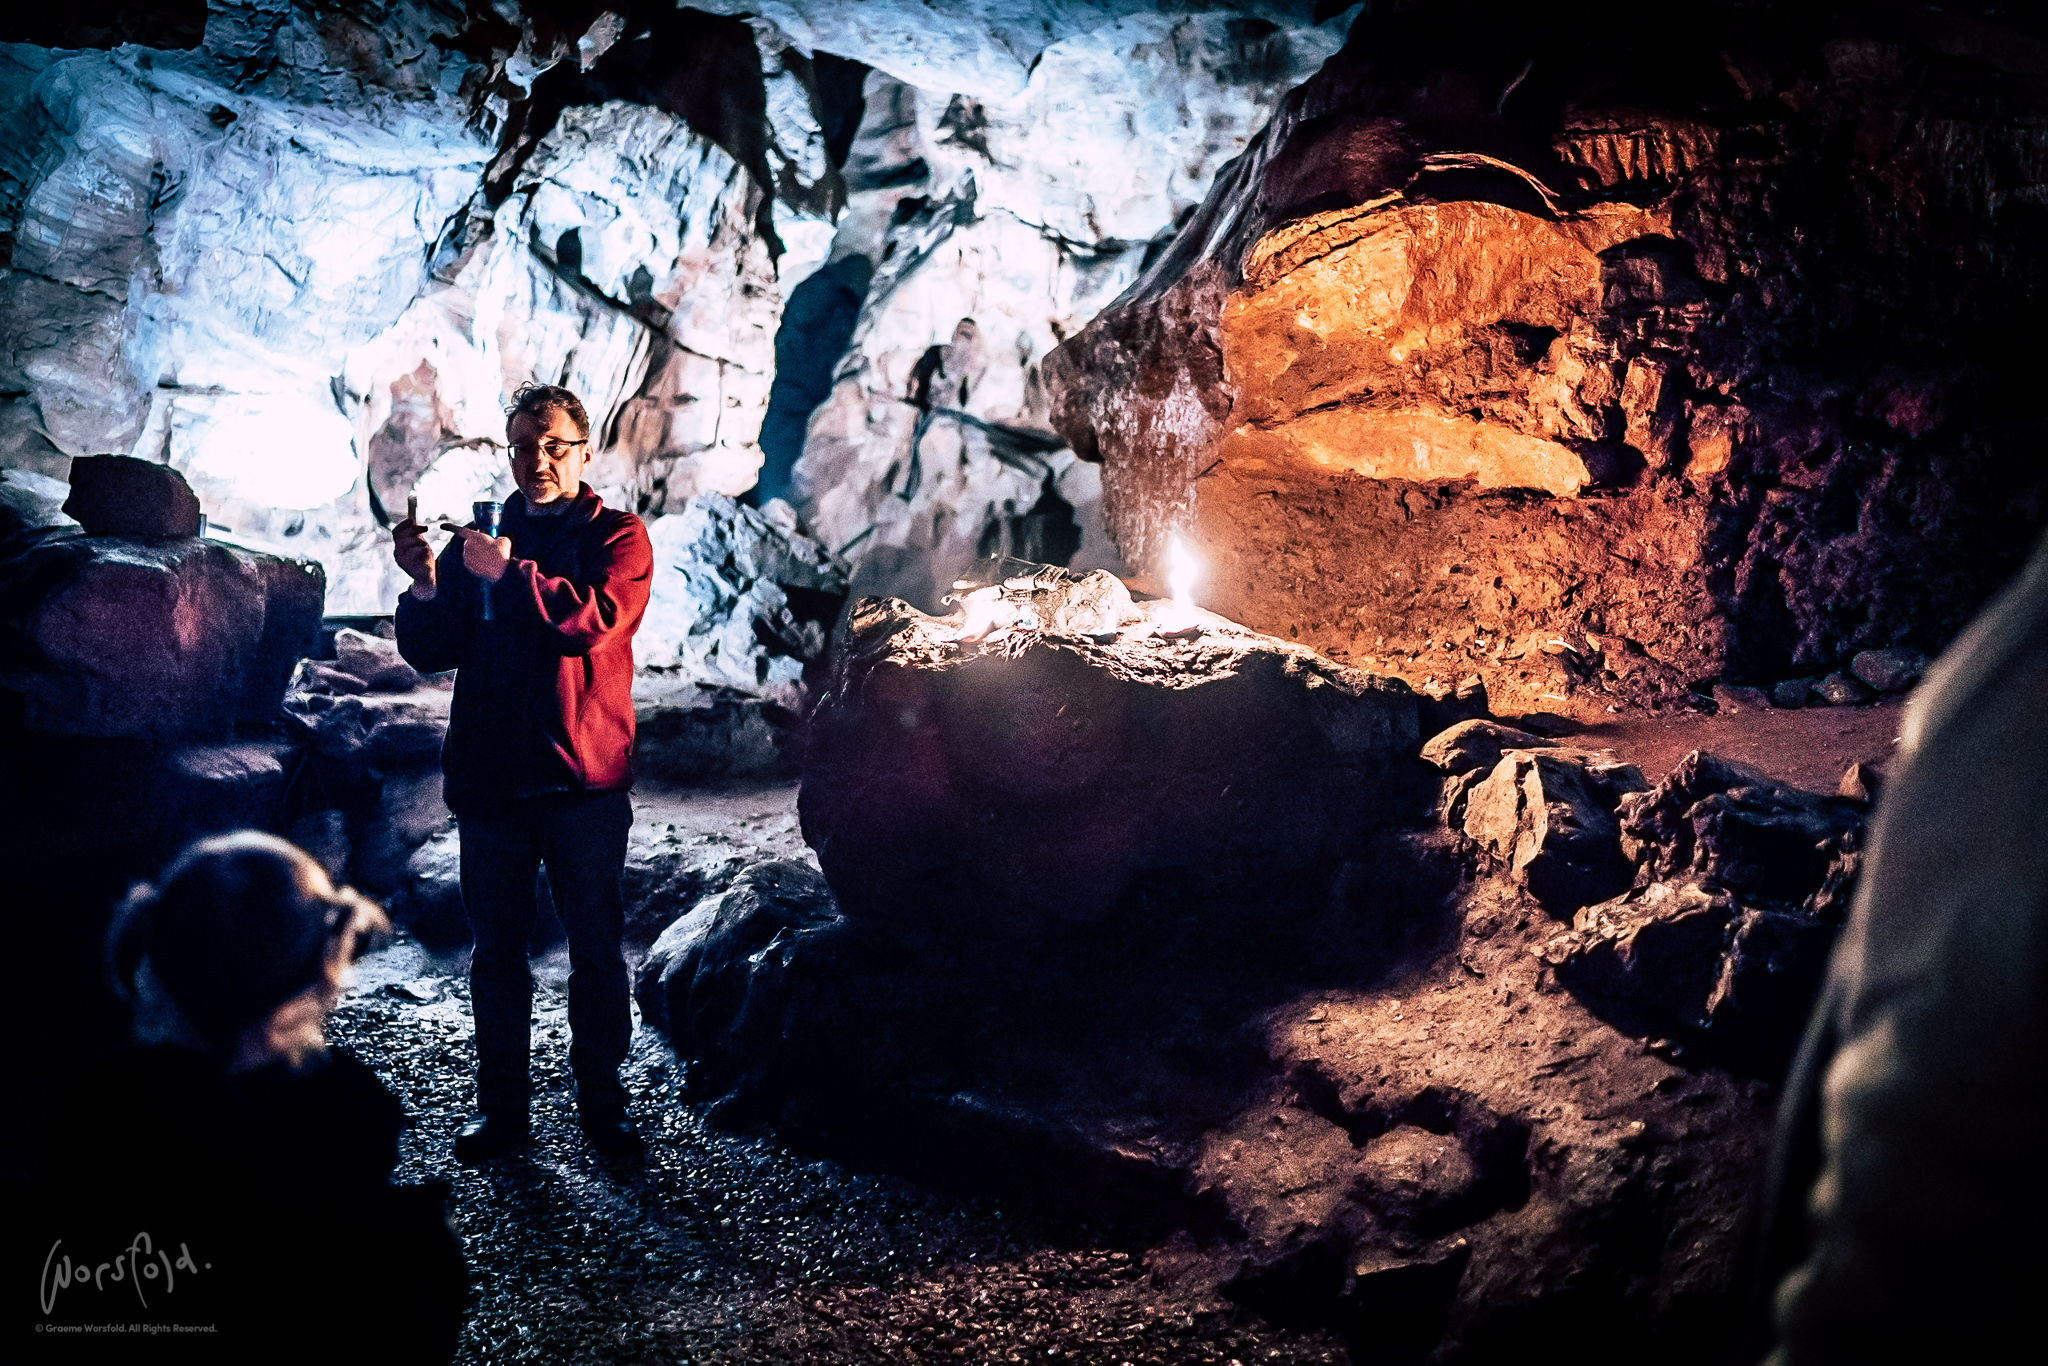 Down in the dark of Kents Cavern.